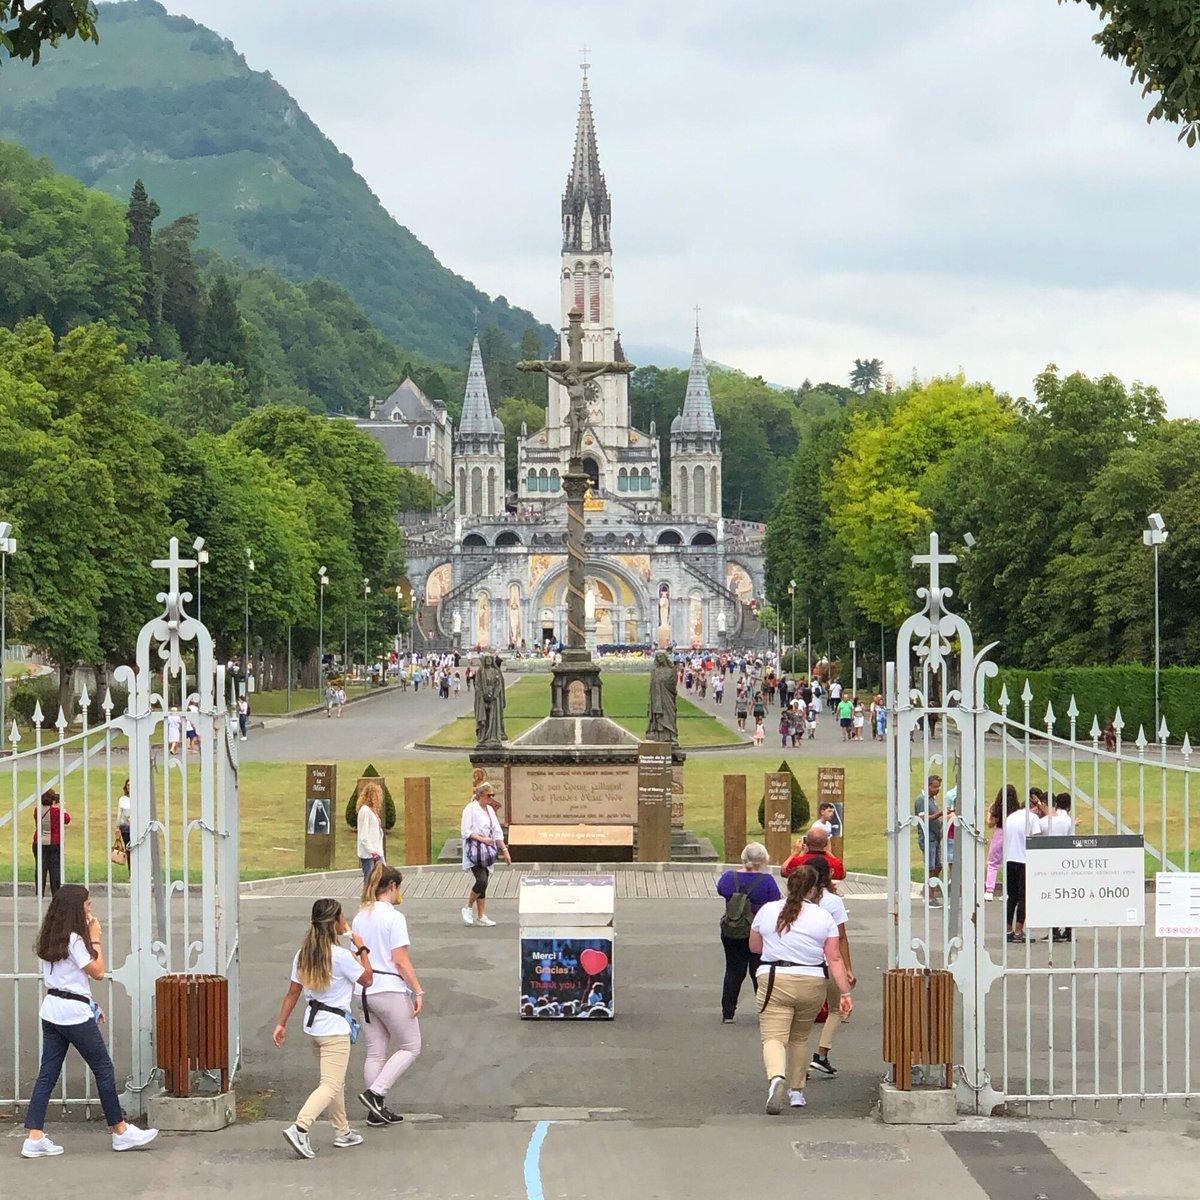 Arrived in Lourdes this afternoon for a week on pilgrimage with the OMV and a wonderful group of guests. May Our Lady of Lourdes and Saint Bernadette pray for us, and may this be a time of healing and grace. <br>http://pic.twitter.com/ZhouT0RUtr